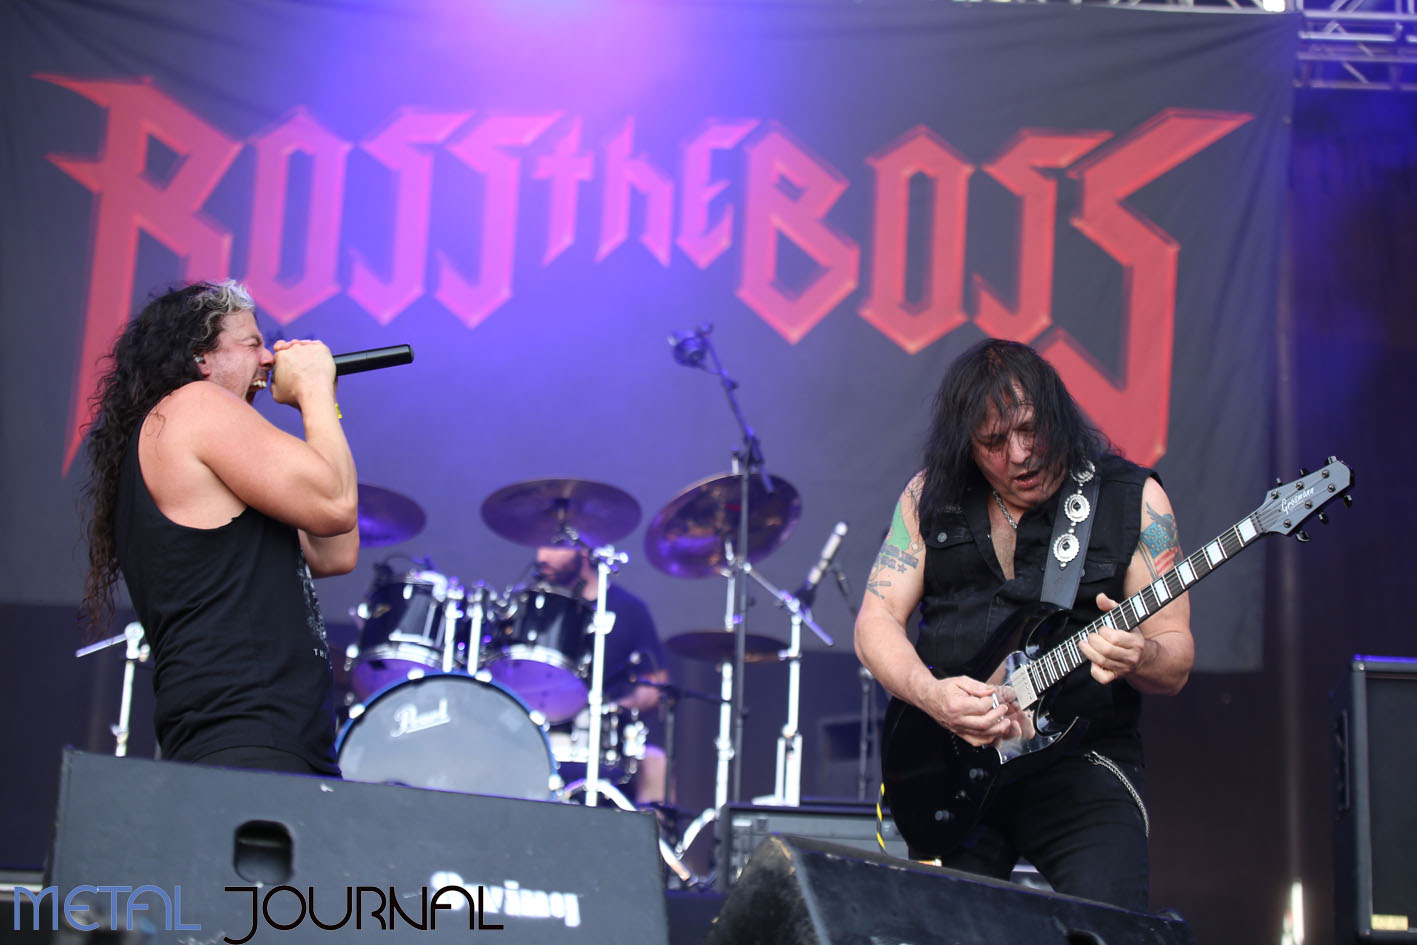 ross the boss - leyendas del rock 2018 pic 3